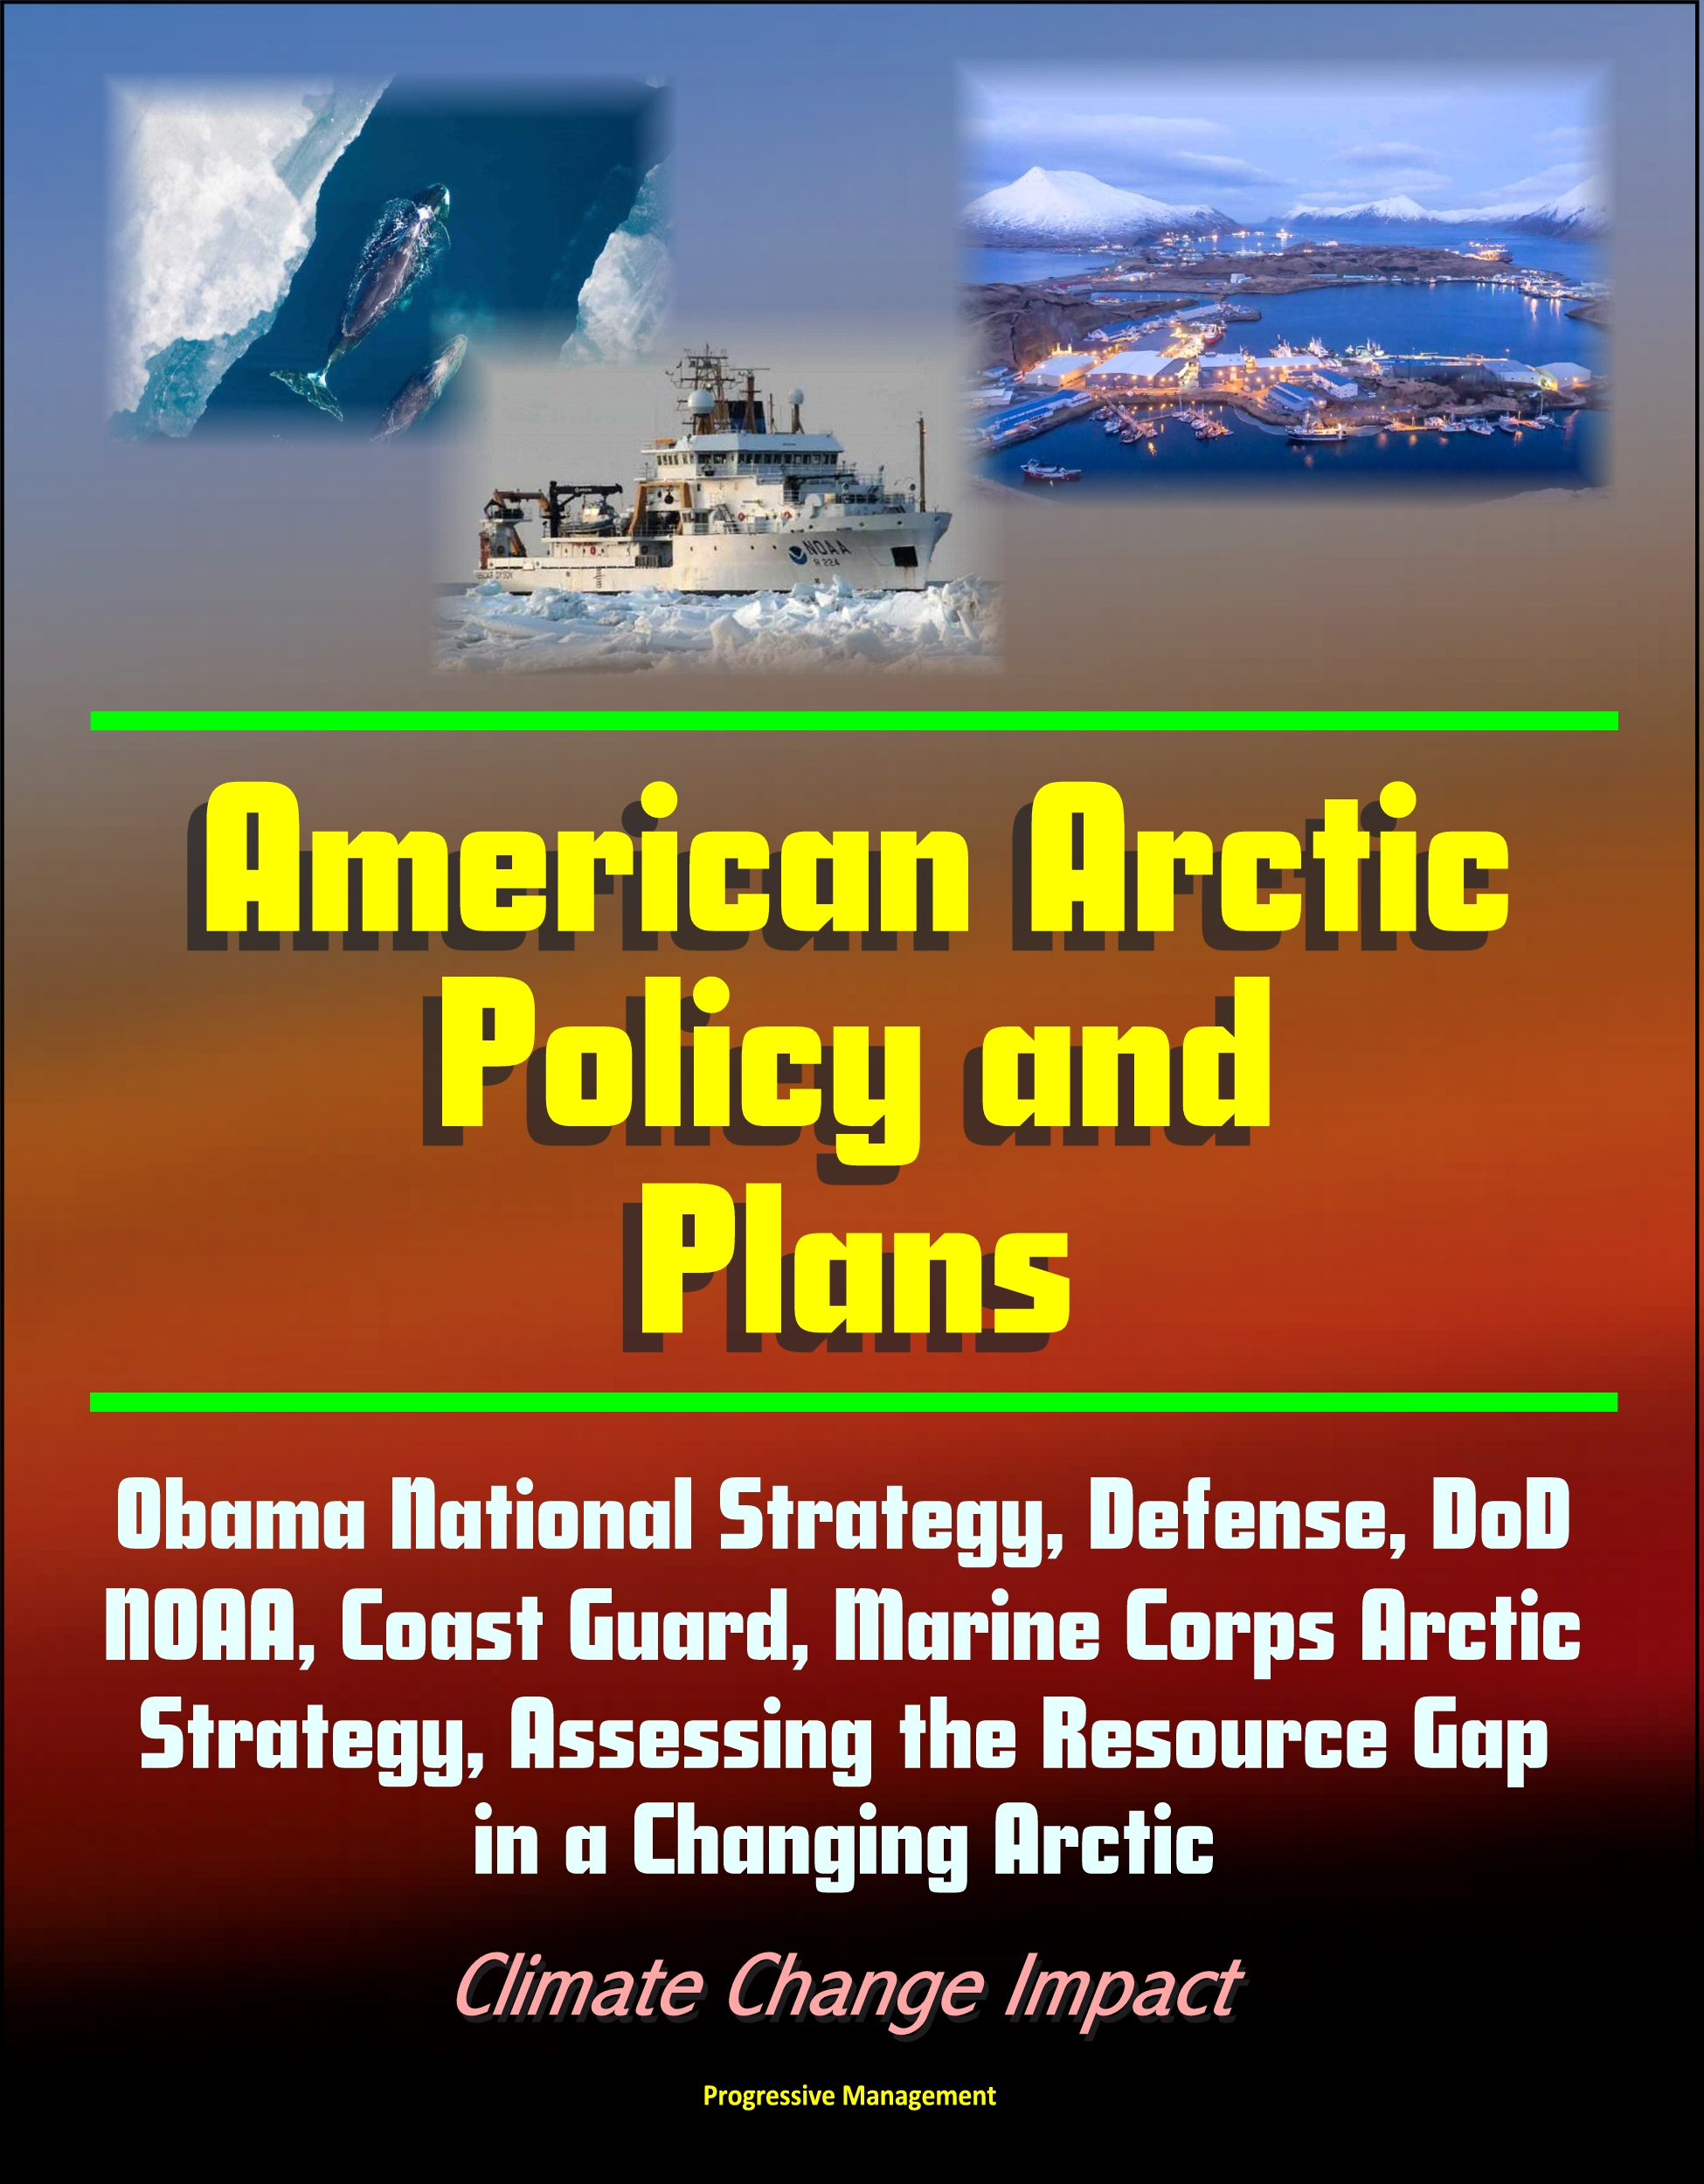 the importance of arctic theater in american national defense strategies Senate armed services committee  statement of  admiral william e gortney, united states navy  commander  united states northern command  and  north american aerospace defense command.